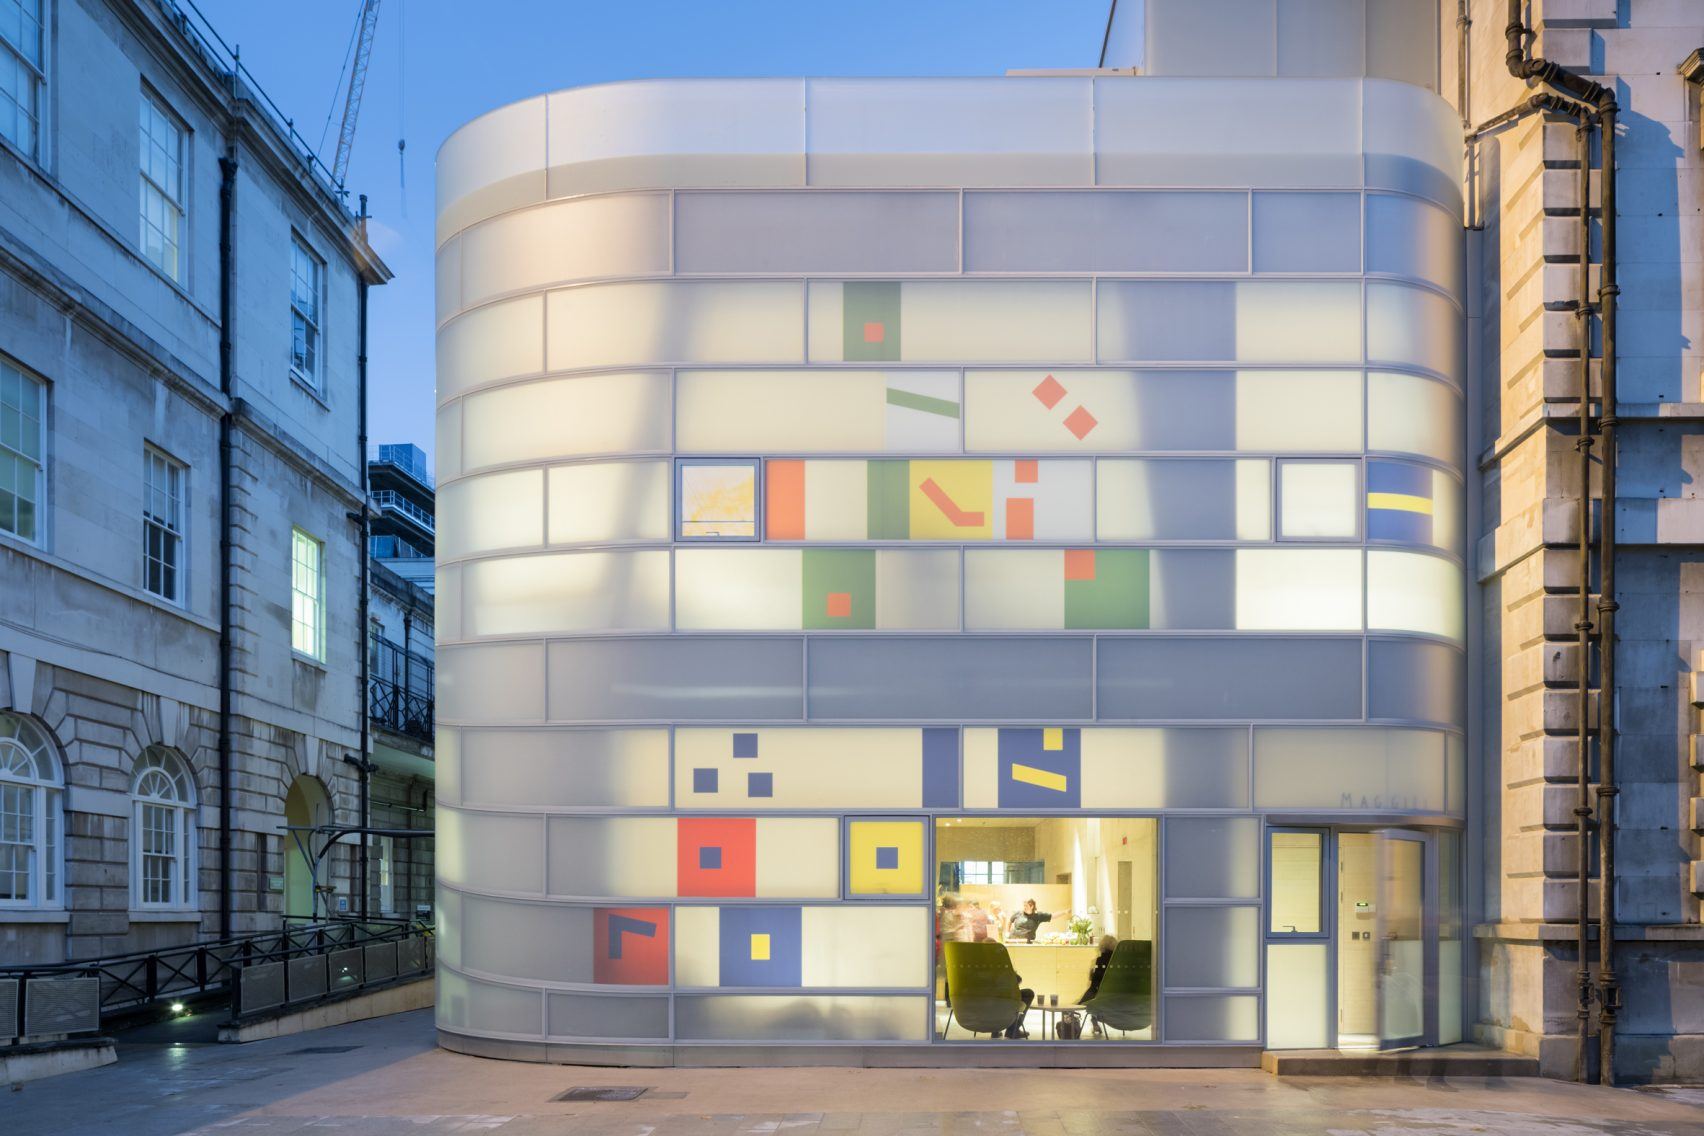 HIGHLIGHT: STEVEN HOLL